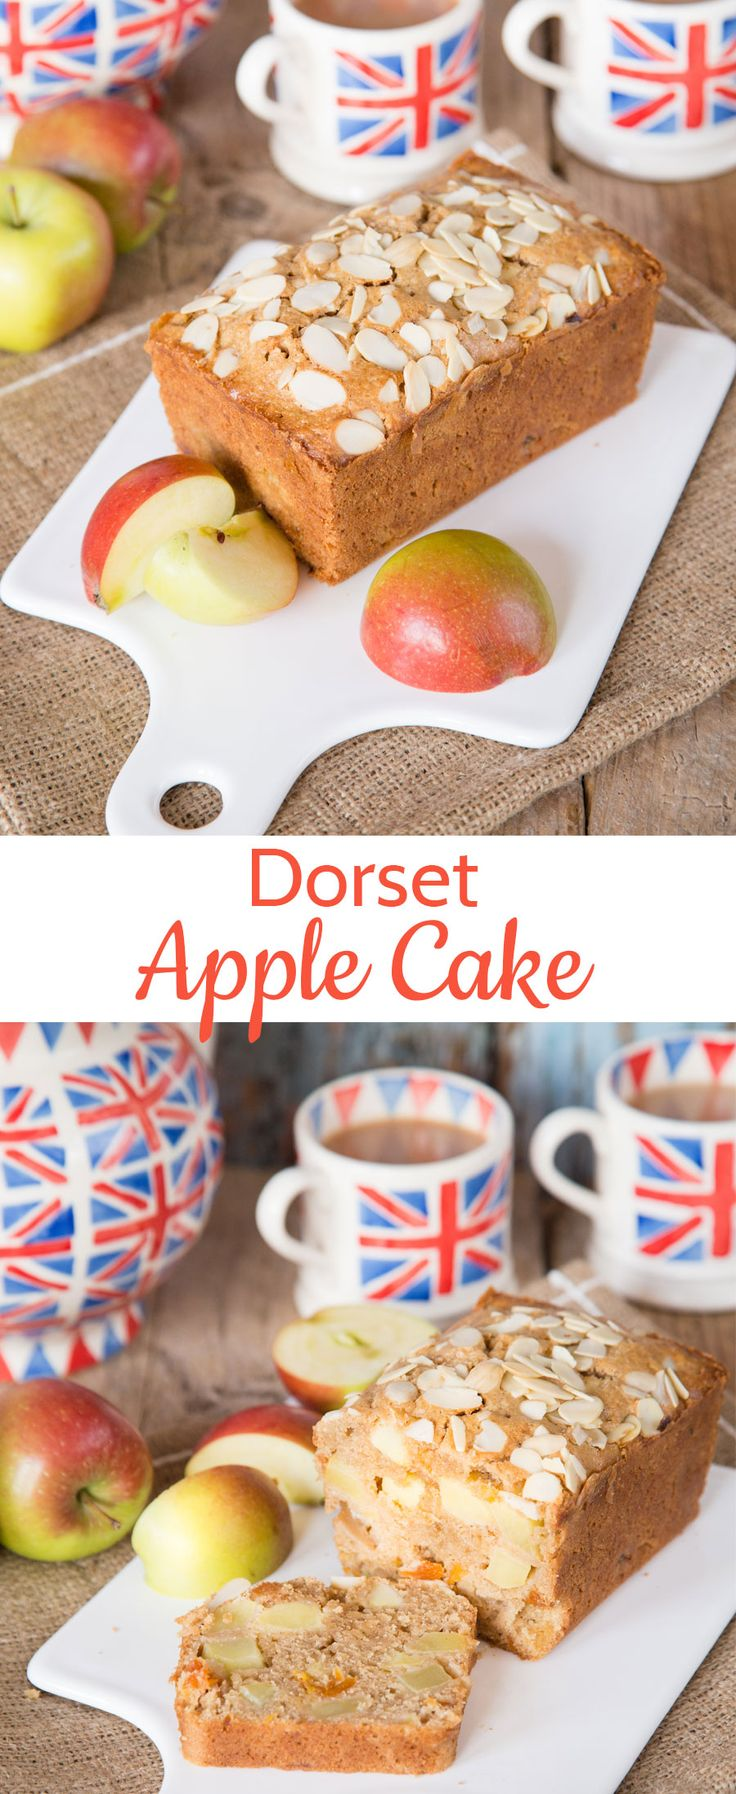 Dorset Apple Cake - the perfect thing to bake on your self catering cottage holiday